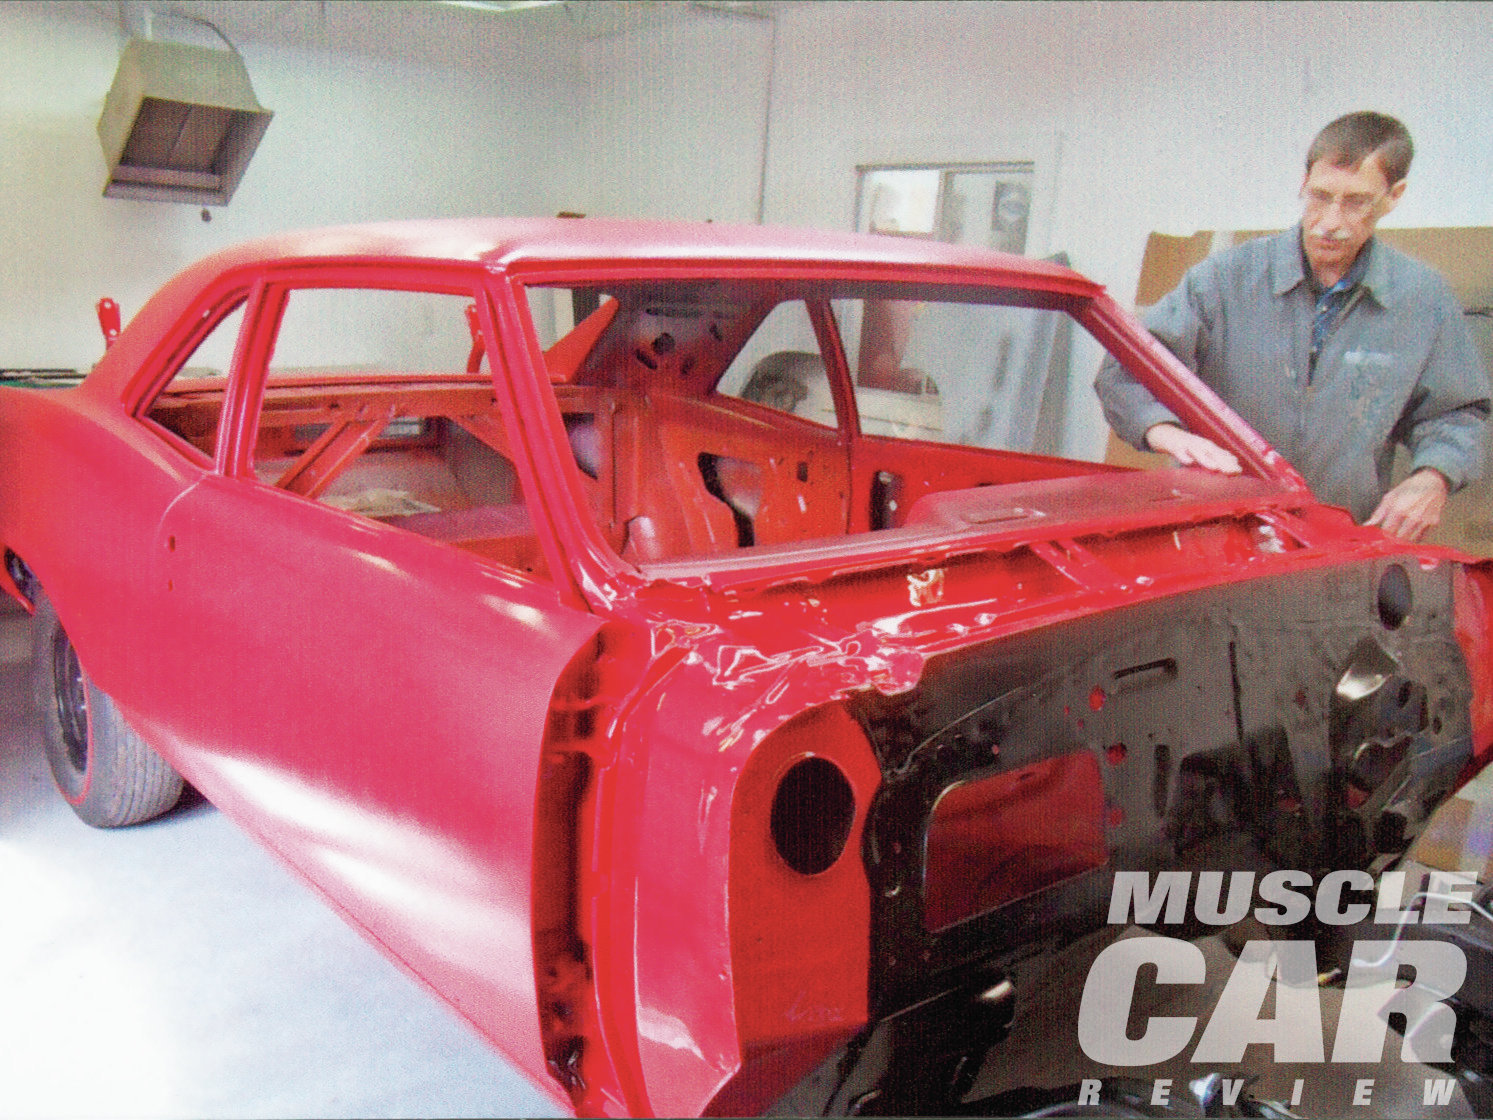 Dennis's GTO turned out for drag racing in June 1975 and while it was undergoing its rotisserie restoration at J&B Classics. Because Dennis never had the car out in the winter, its original sheetmetal was perfect.